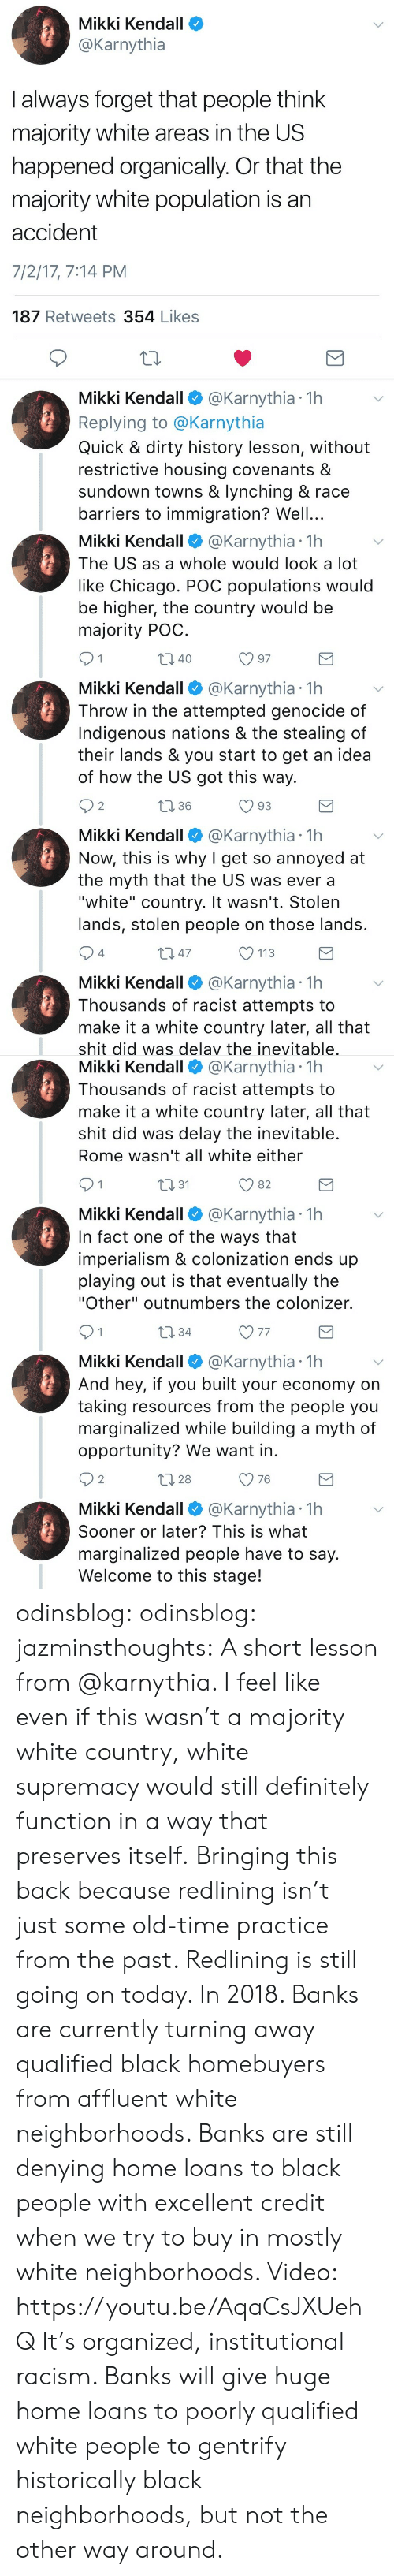 """lynching: Mikki Kendall  @Karnythia  I always forget that people think  majority white areas in the US  happened organically. Or that the  majority white population is an  accident  7/2/17, 7:14 PM  187 Retweets 354 Likes  10  Mikki Kendall @Karnythia 1h  Replying to @Karnythia  Quick & dirty history lesson, without  restrictive housing covenants &  sundown towns & lynching & race  barriers to immigration? Well...   Mikki Kendall@Karnythia 1h  The US as a whole would look a lot  like Chicago. POC populations would  be higher, the country would be  majority POC  40  Mikki Kendall @Karnythia 1h  Throw in the attempted genocide of  Indigenous nations & the stealing of  their lands & you start to get an idea  of how the US got this way.  2  1 36  Mikki Kendall@Karnythia 1h  Now, this is why I get so annoyed at  the myth that the US was ever a  """"white"""" country. It wasn't. Stolen  lands, stolen people on those lands  4  m 47  113  Mikki Kendall @Karnythia 1h  Thousands of racist attempts to  make it a white country later, all that  shit did was delav the inevitable   Mikki Kendall @Karnythia 1h  Thousands of racist attempts to  make it a white country later, all that  shit did was delay the inevitable  Rome wasn't all white either  n31  O 82  Mikki Kendall @Karnythia 1h  In fact one of the ways that  imperialism & colonization ends up  playing out is that eventually the  """"Other"""" outnumbers the colonizer.  10 34  V 77  Mikki Kendall @Karnythia 1h  And hey, if you built your economy on  taking resources from the people you  marginalized while building a myth of  opportunity? We want in  2  28  O 76  Mikki Kendall @Karnythia 1h  Sooner or later? This is what  marginalized people have to say  Welcome to this stage! odinsblog:  odinsblog:  jazminsthoughts:  A short lesson from @karnythia.   I feel like even if this wasn't a majority white country, white supremacy would still definitely function in a way that preserves itself.  Bringing this back because redlining isn't just so"""